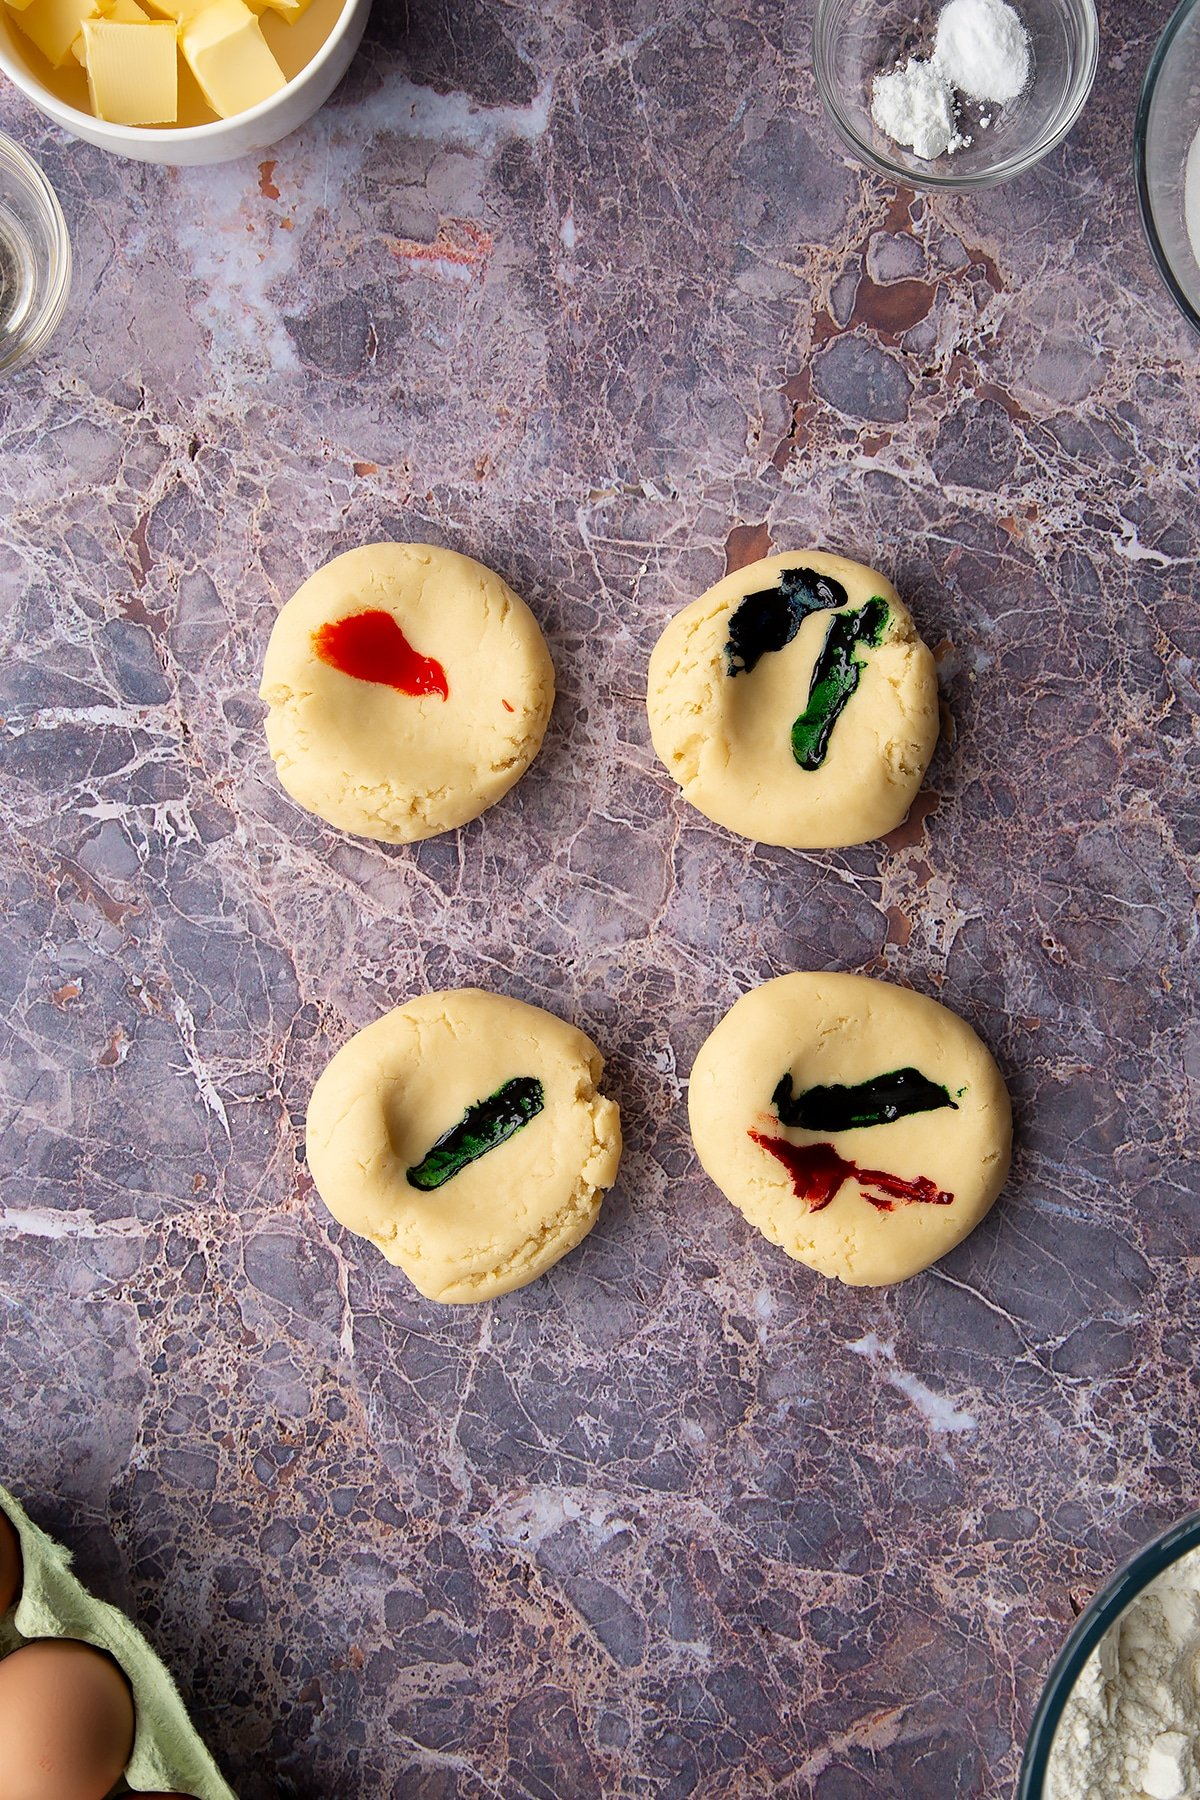 Overhead shot of 4 round pieces of cookie dough with food colouring painted on top